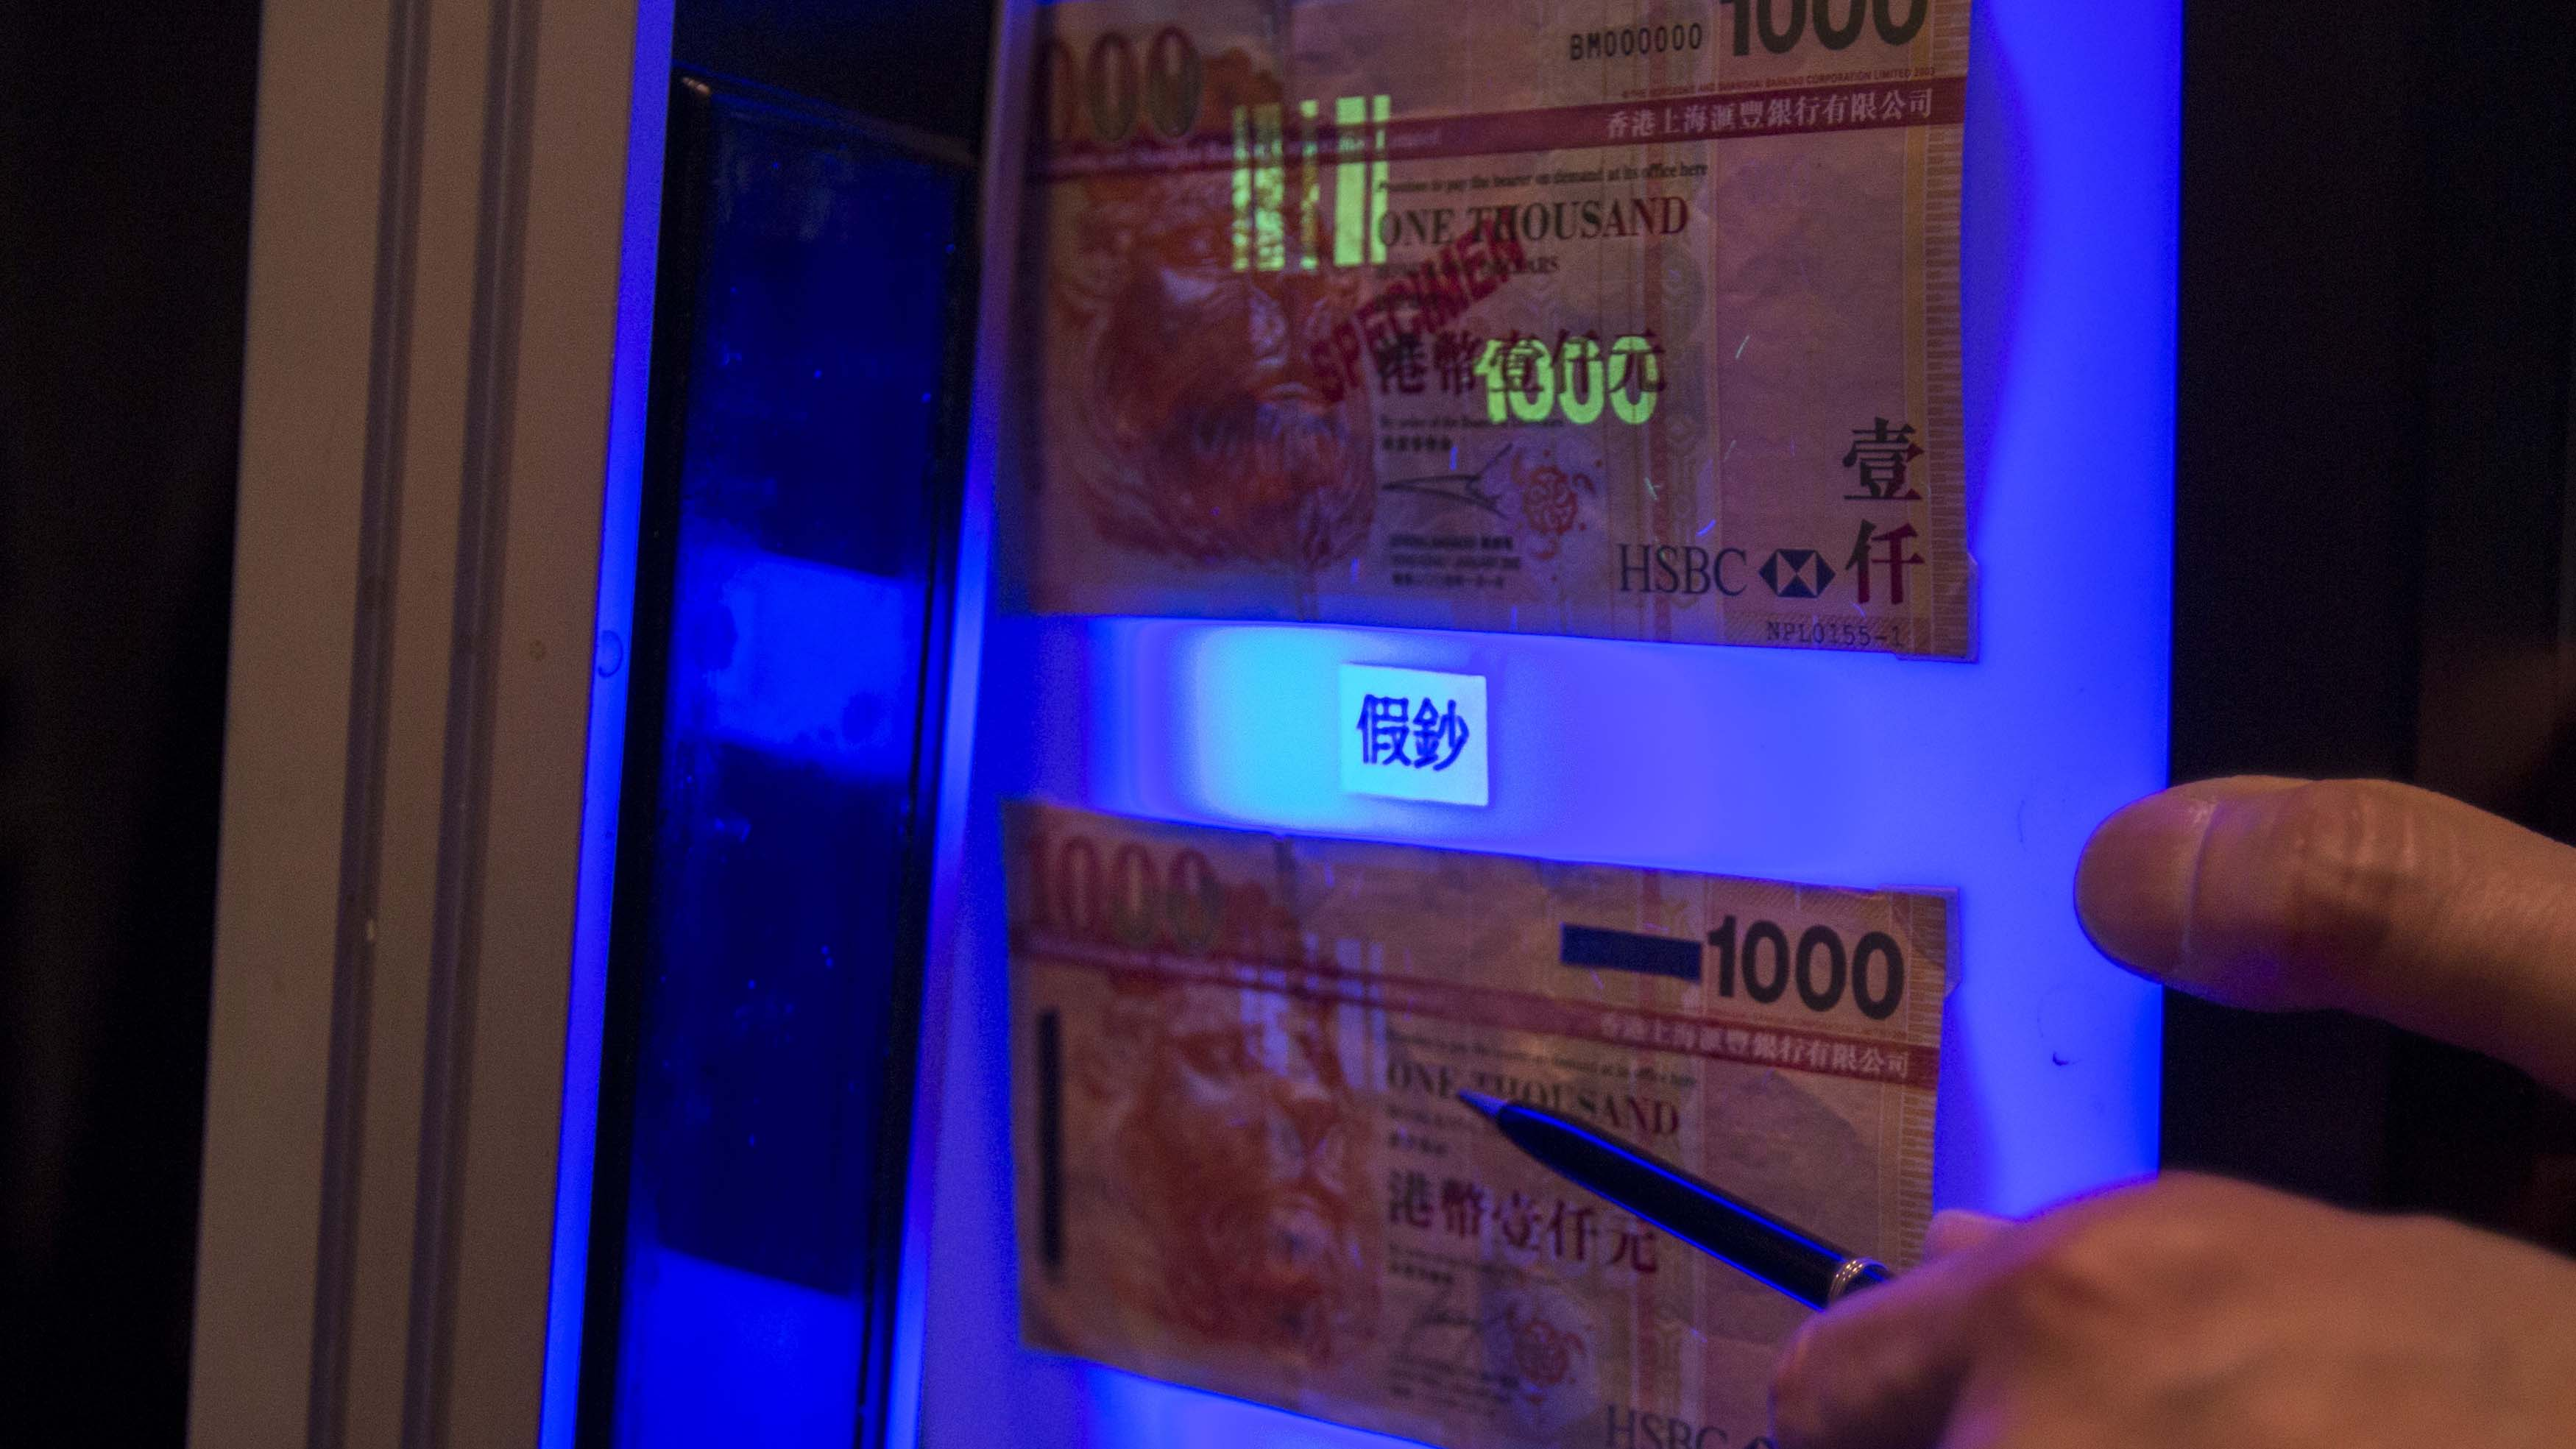 An authentic HK$1,000 ($129) banknote sample is displayed above a counterfeit note under ultraviolet (UV) light during a joint news conference held by Hong Kong Monetary Authority (HKMA) and the Hong Kong Police Force in Hong Kong, December 27, 2013. According to local media, fake HK $1,000 HSBC banknotes were found in Macau on Thursday, a day after counterfeit Bank of China notes were discovered, which leads to a total of 29 fake HK$1,000 notes being found in both Hong Kong and Macau thus far. REUTERS/Tyrone Siu (CHINA - Tags: CRIME LAW BUSINESS) - RTX16UTS